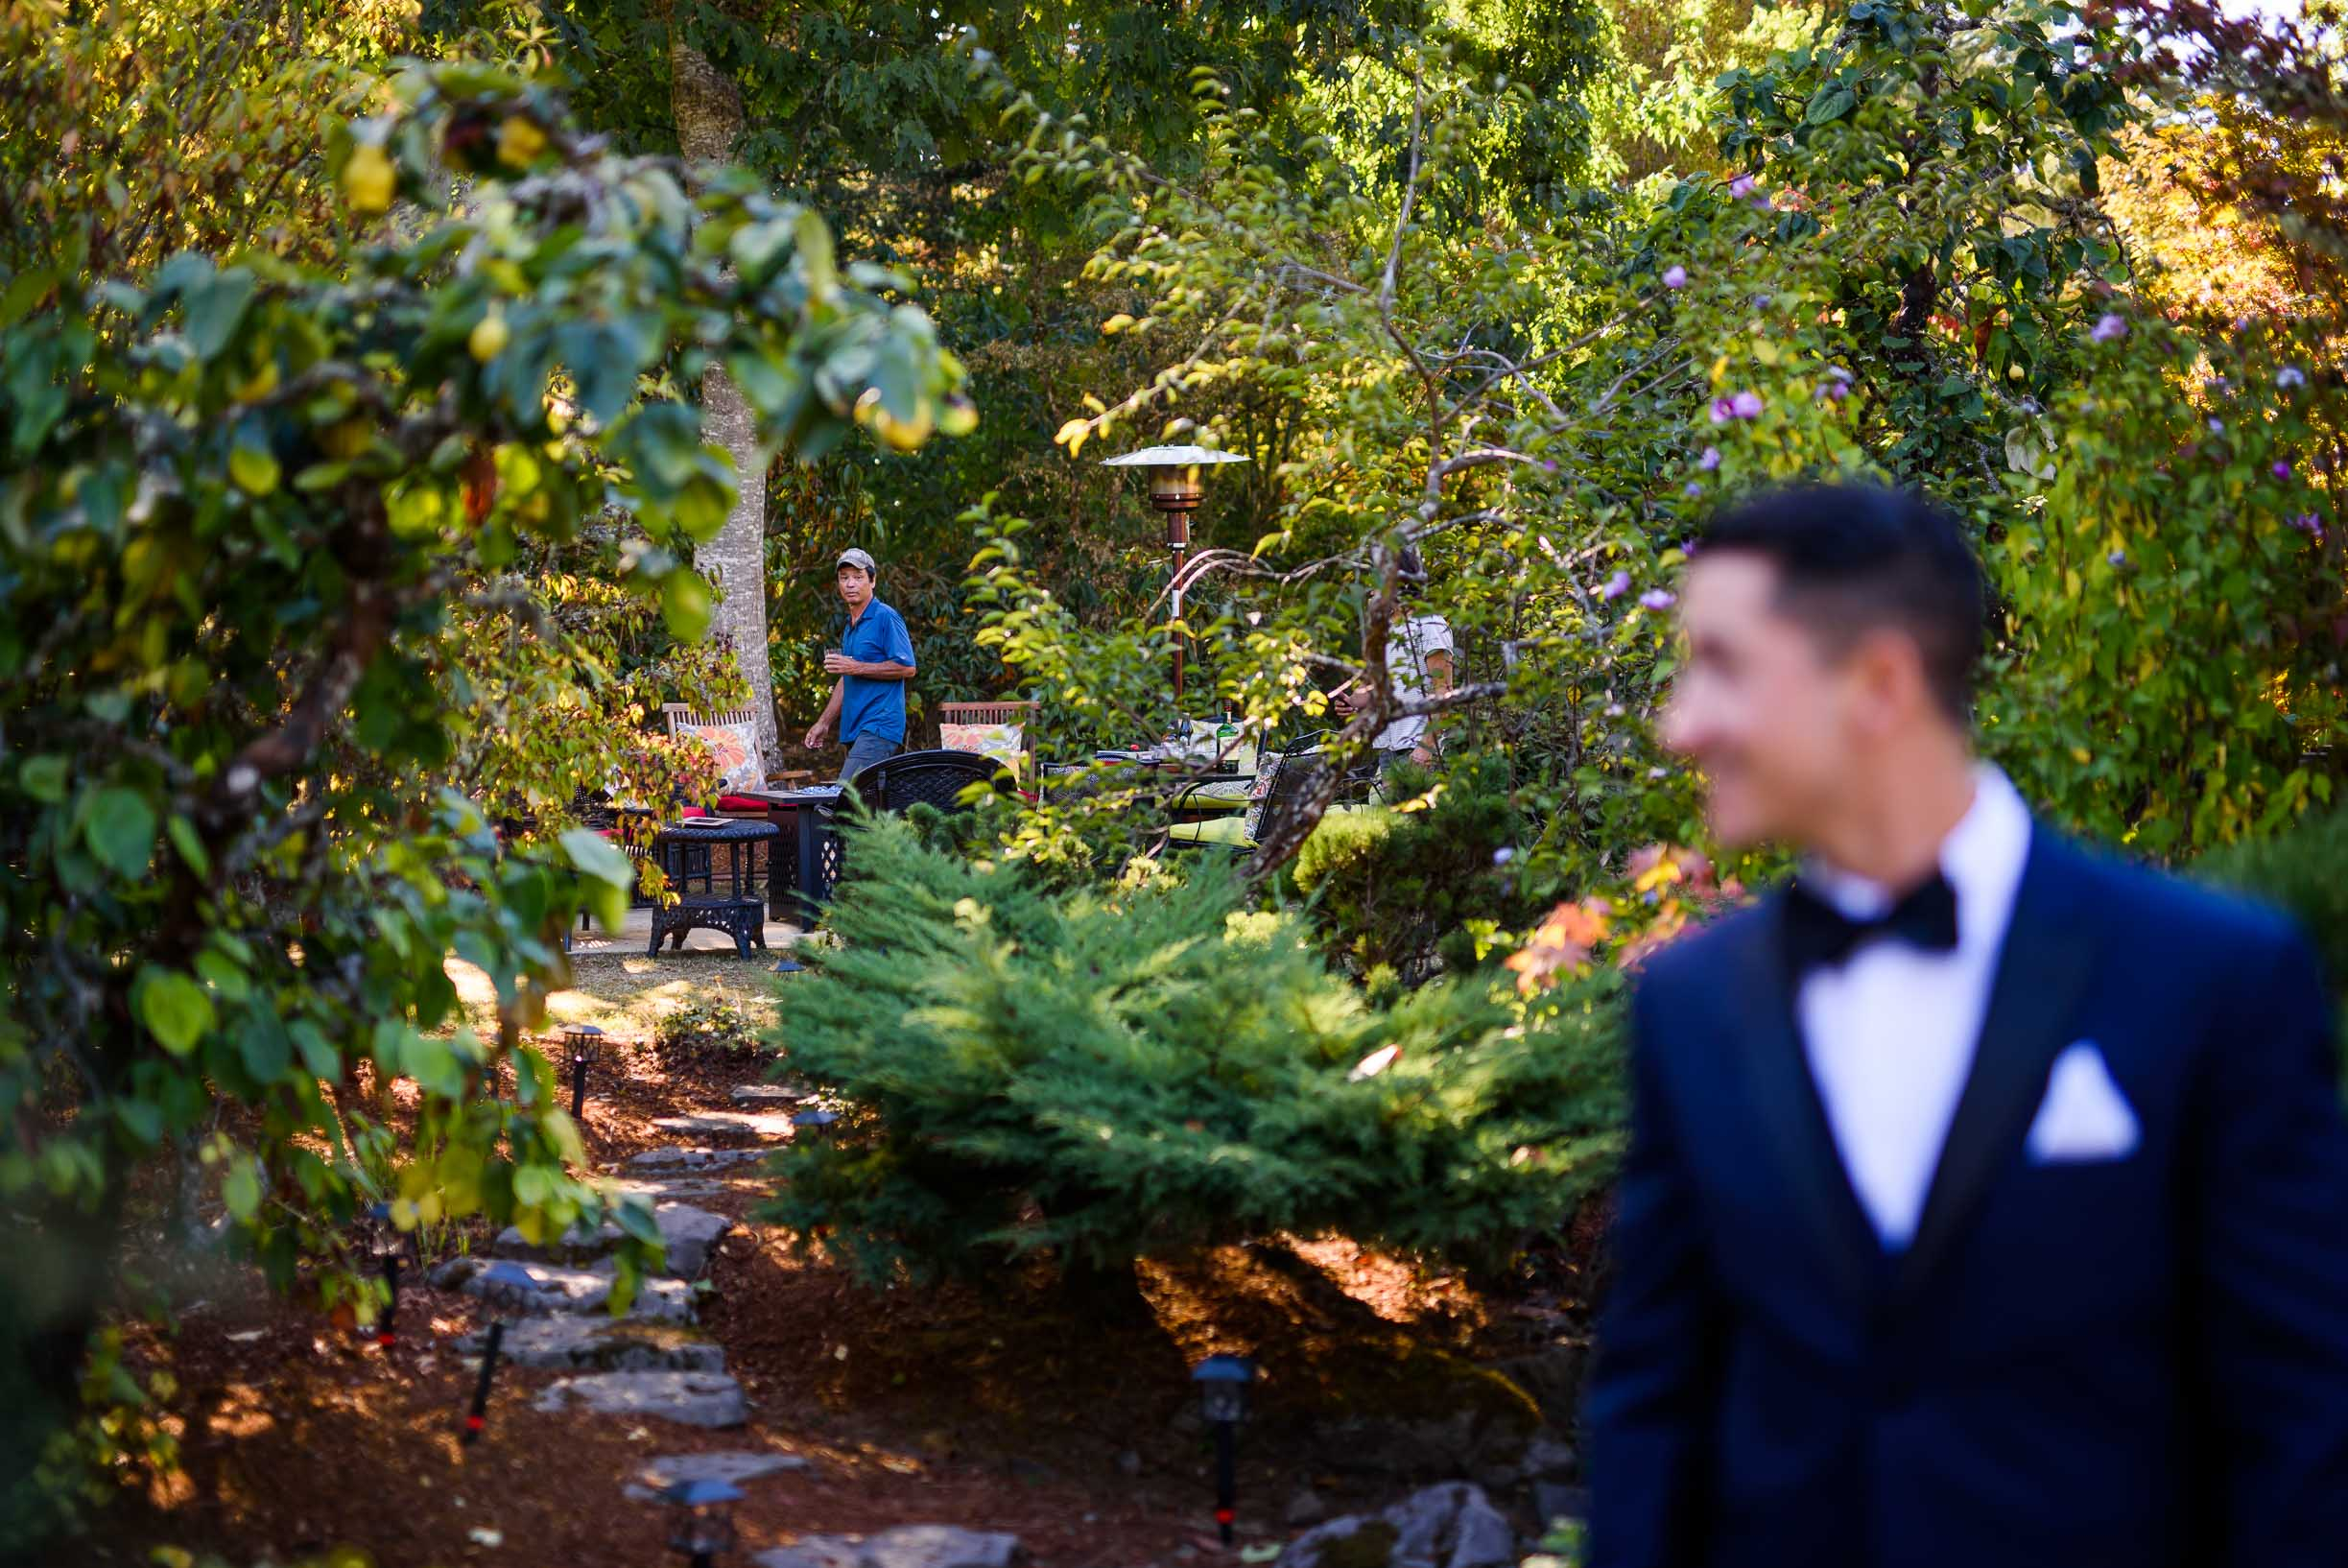 PORTLAND INTAMATE BACKYARD WEDDING 15.jpg